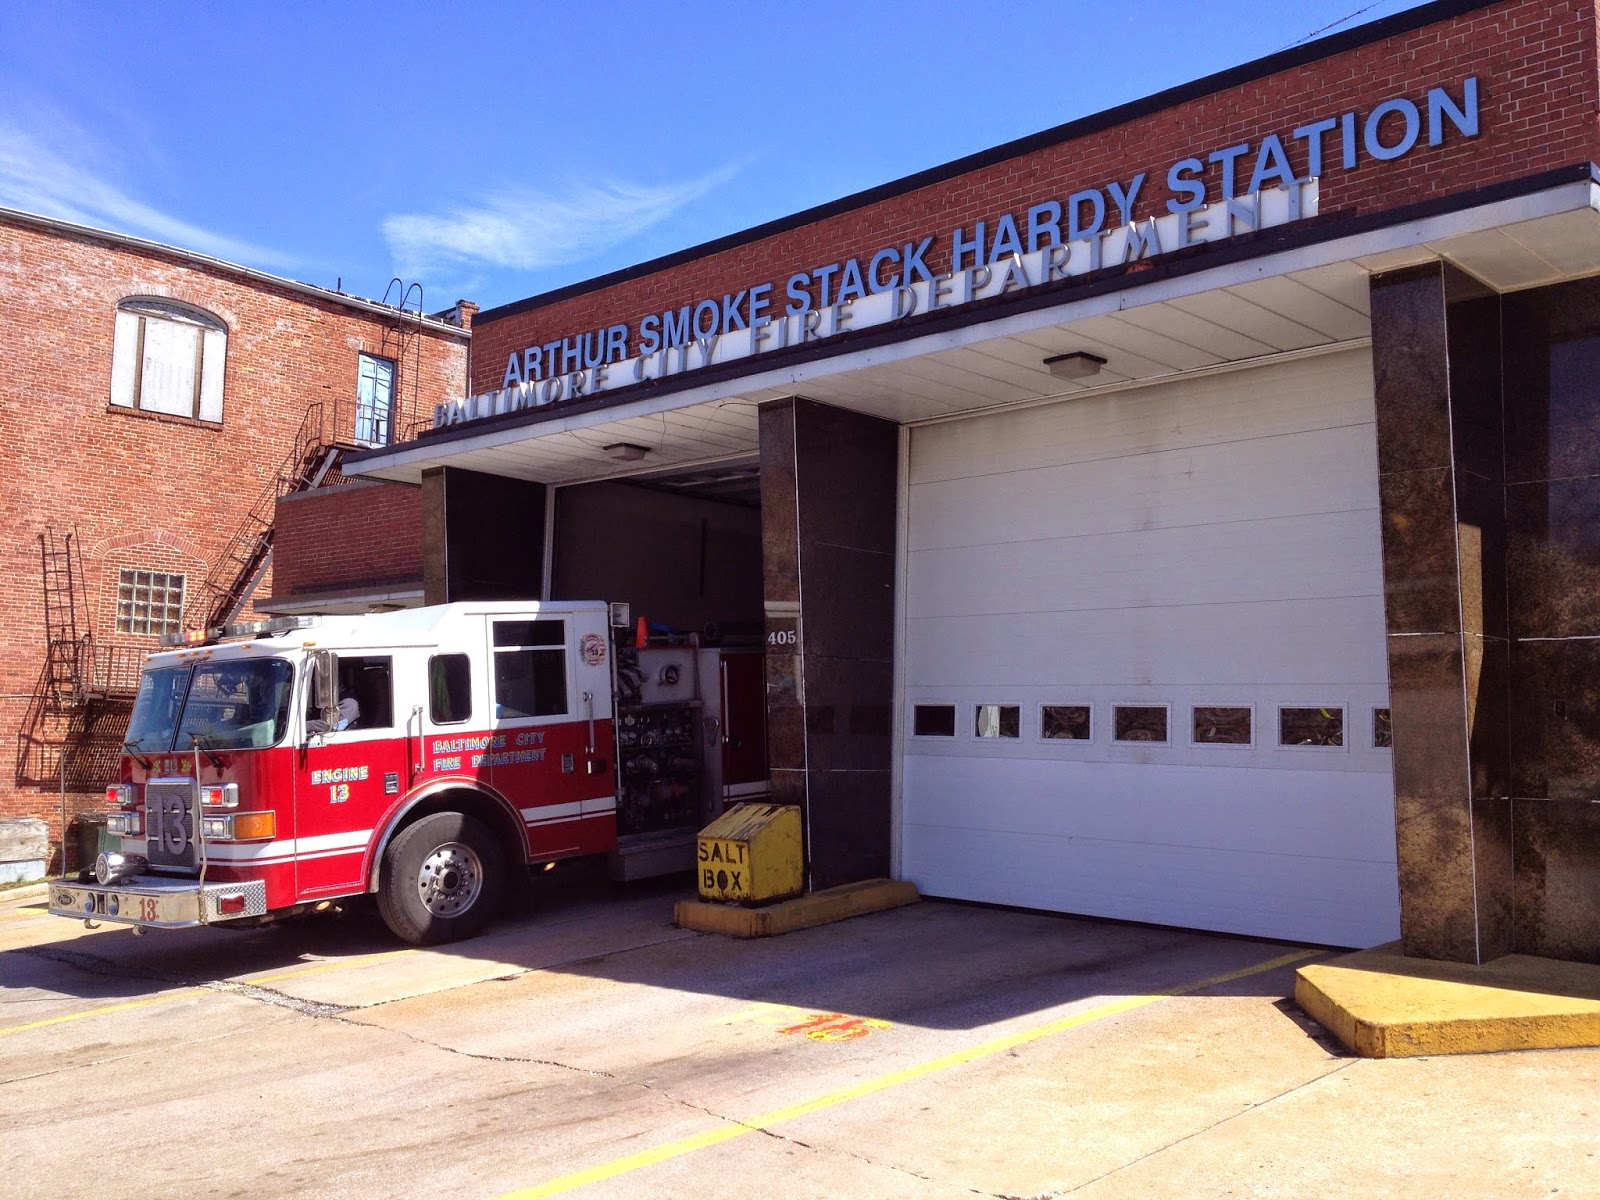 Arthur Hardy Fire Station